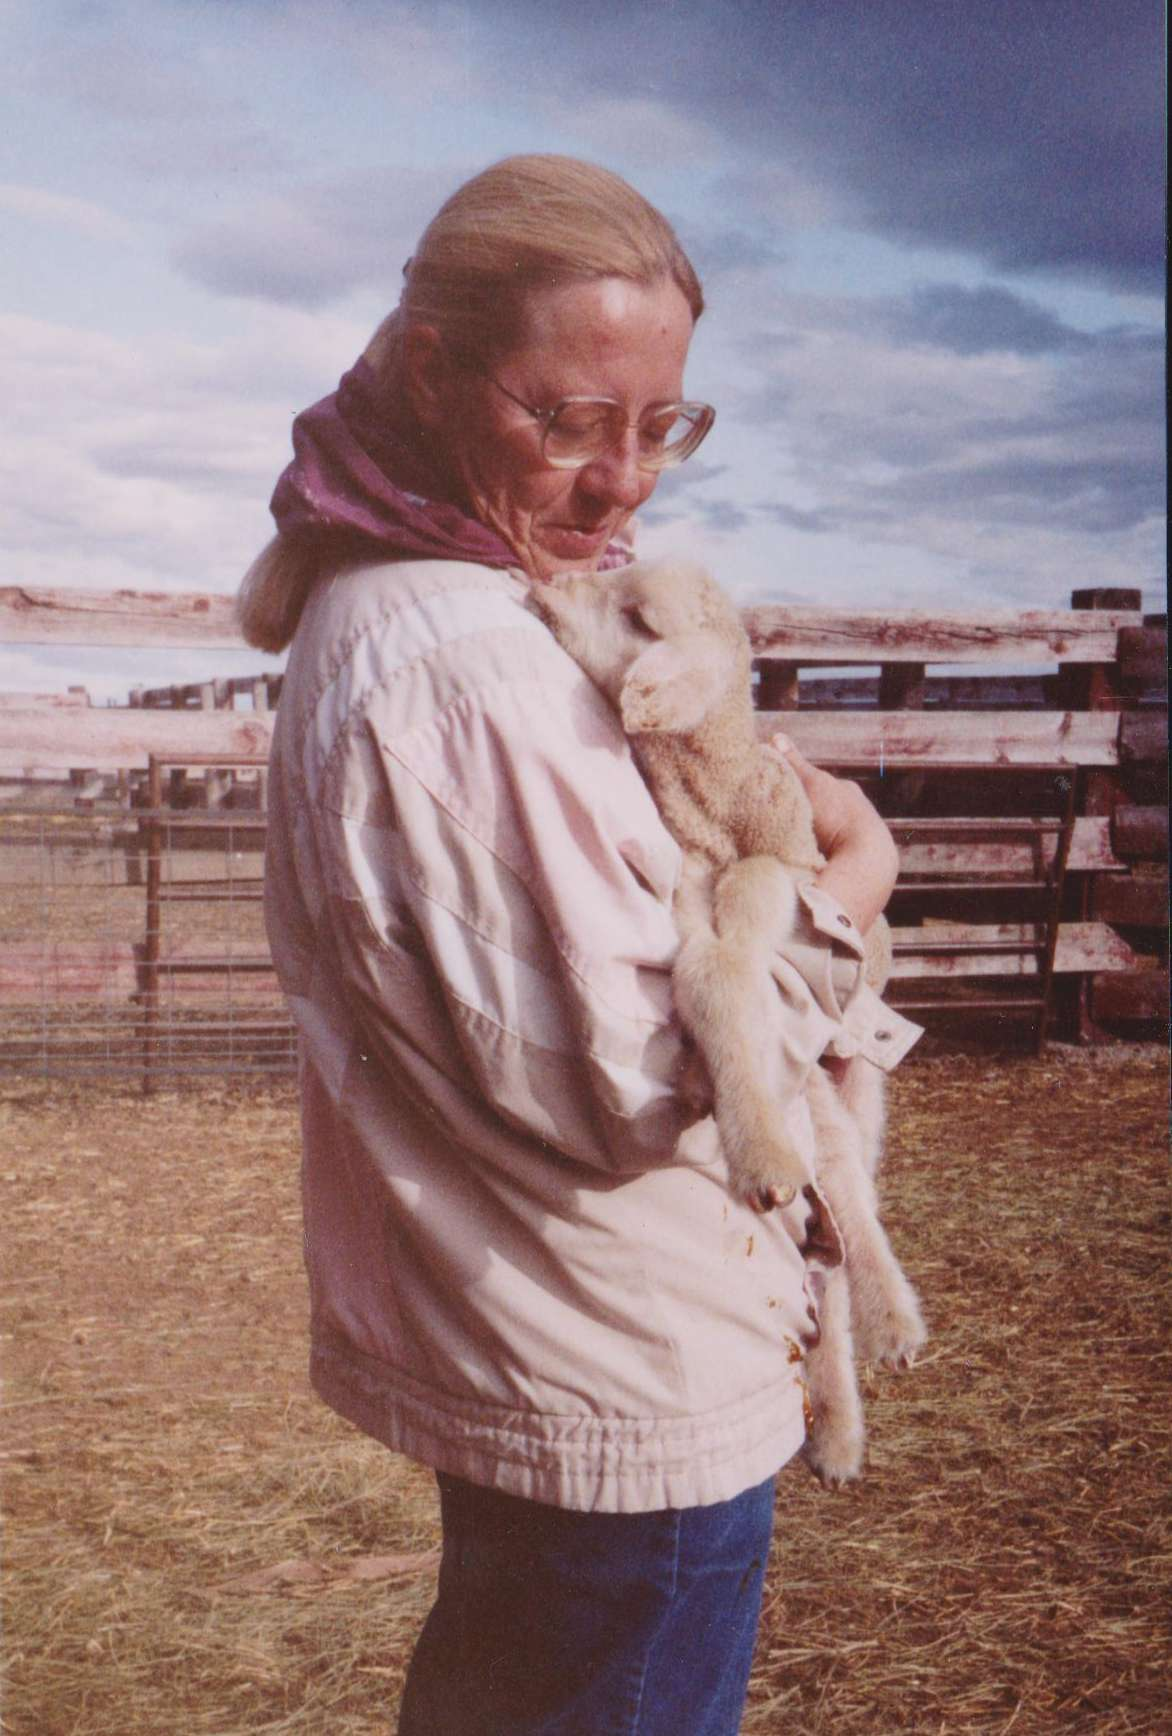 Montana prairie county mildred - Peggy Lynn Breen Glasscock Age 69 Passed Away Peacefully On February 14 2017 At Billings Clinic In Billings Montana Peggy Was Born On March 16